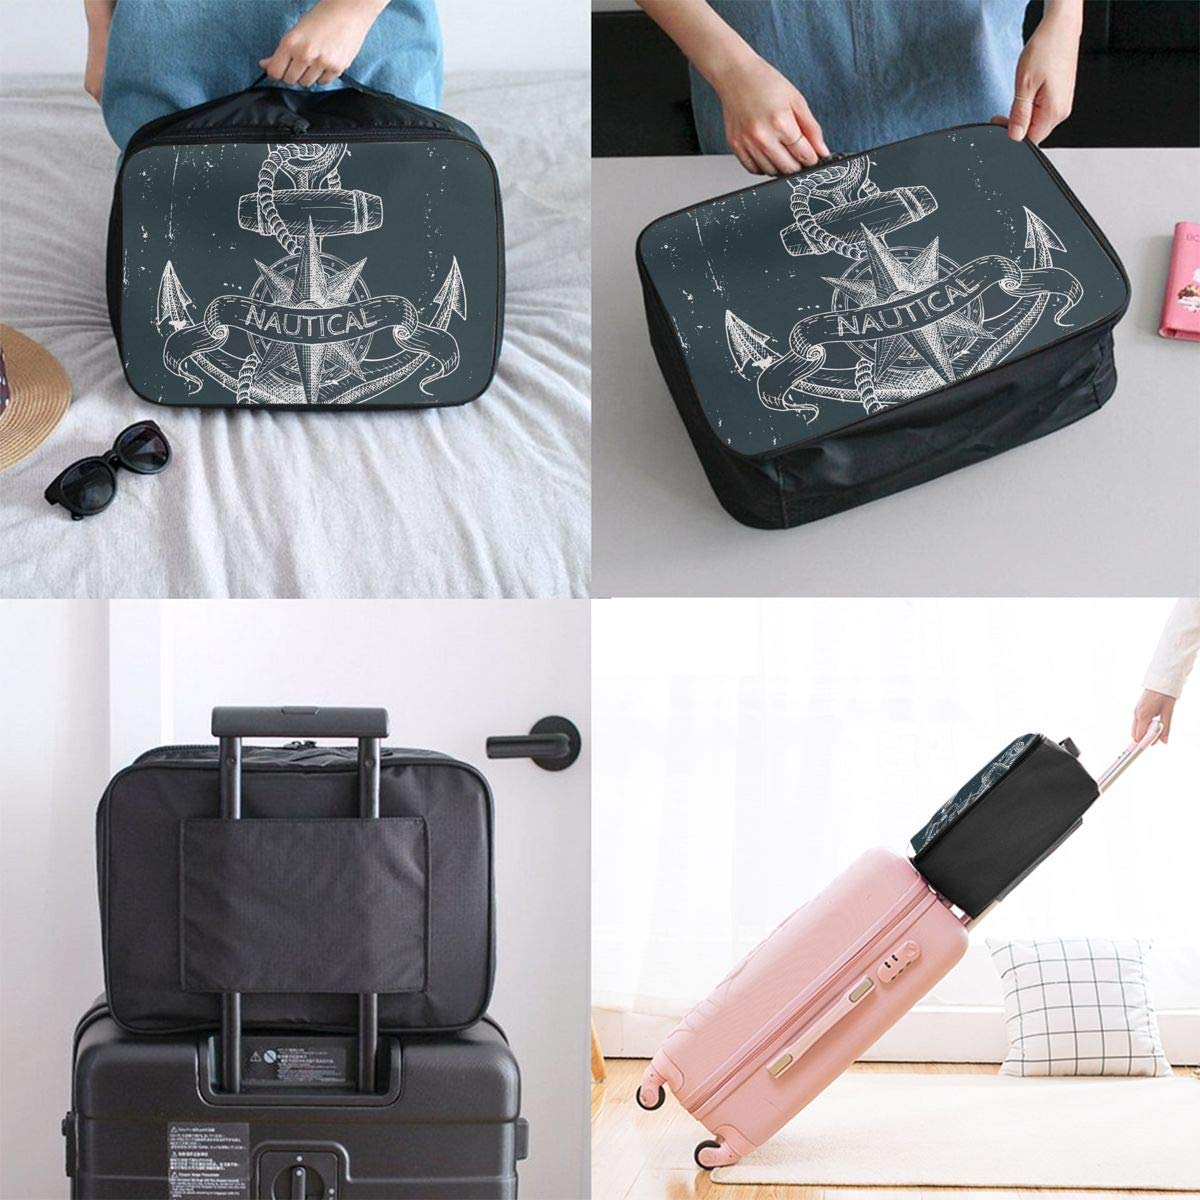 Nautical Knot Compass Anchor Ocean Life Grunge Illustration Travel Lightweight Waterproof Foldable Storage Portable Luggage Duffle Tote Bag Large Capacity In Trolley Handle Bags 6x11x15 Inch